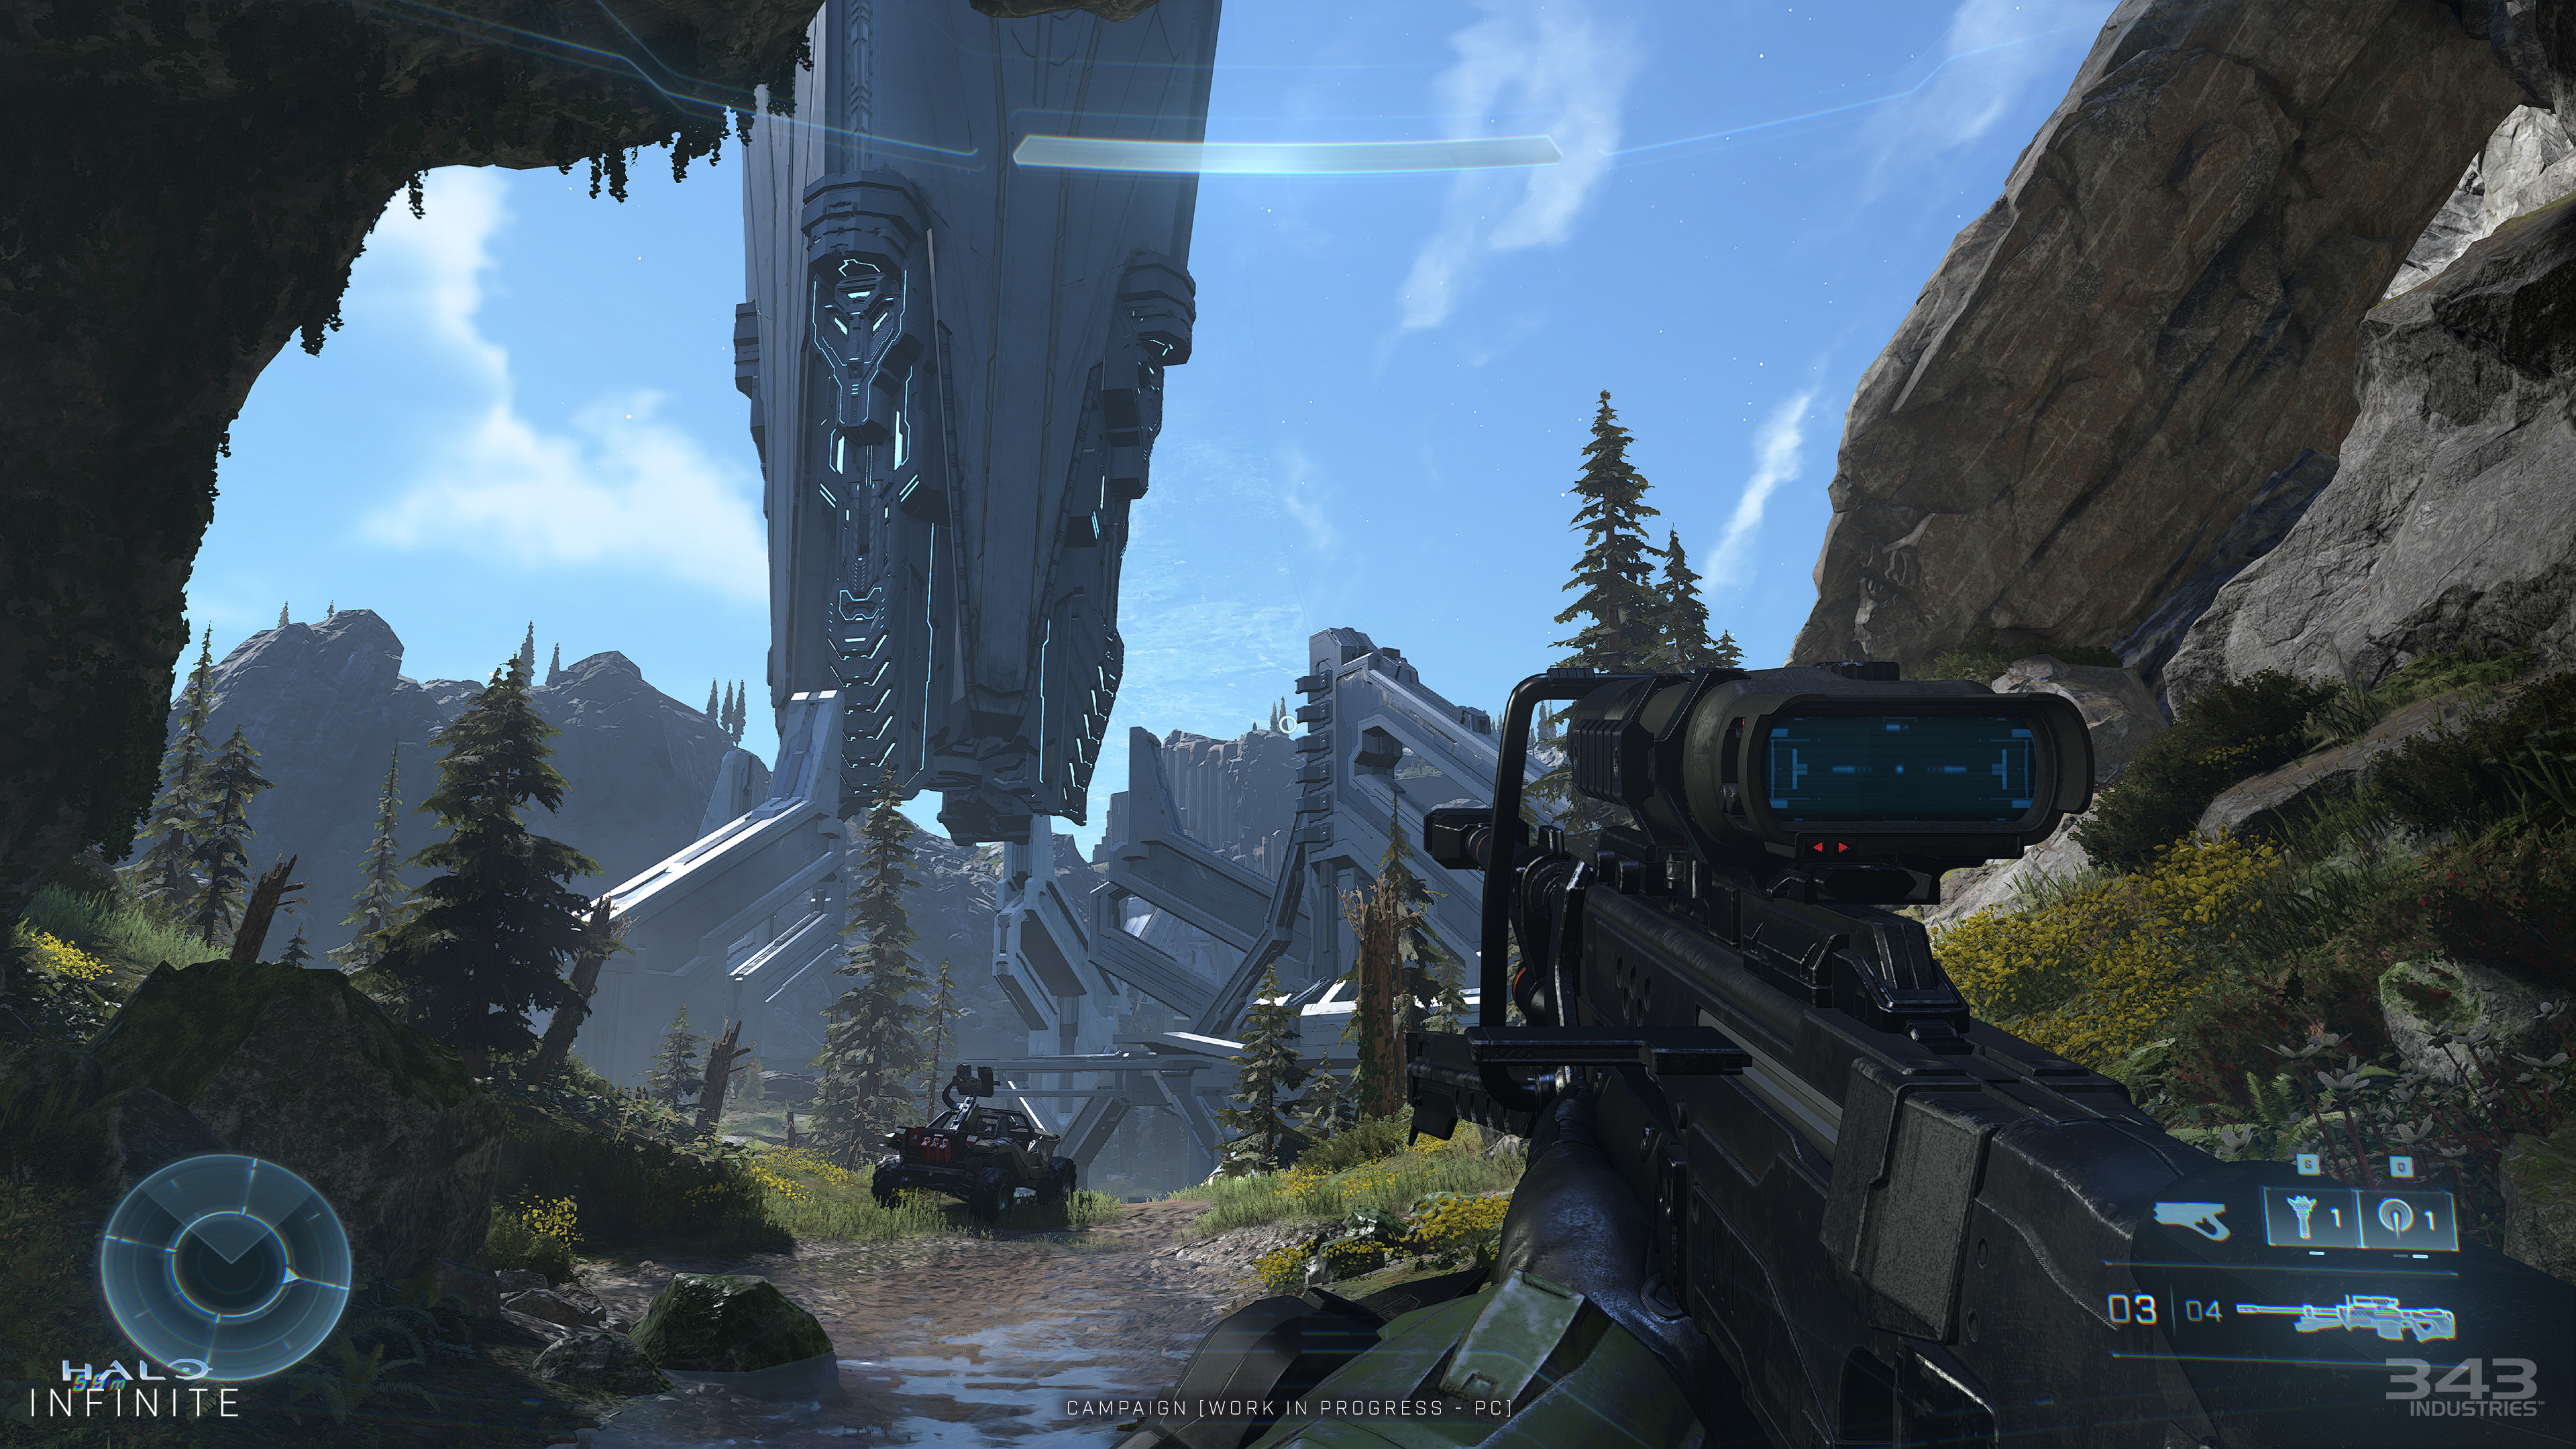 """Even if it's not finalized, I'll dub this the """"Halo Infinite sniper screenshot."""" It's *the one*."""